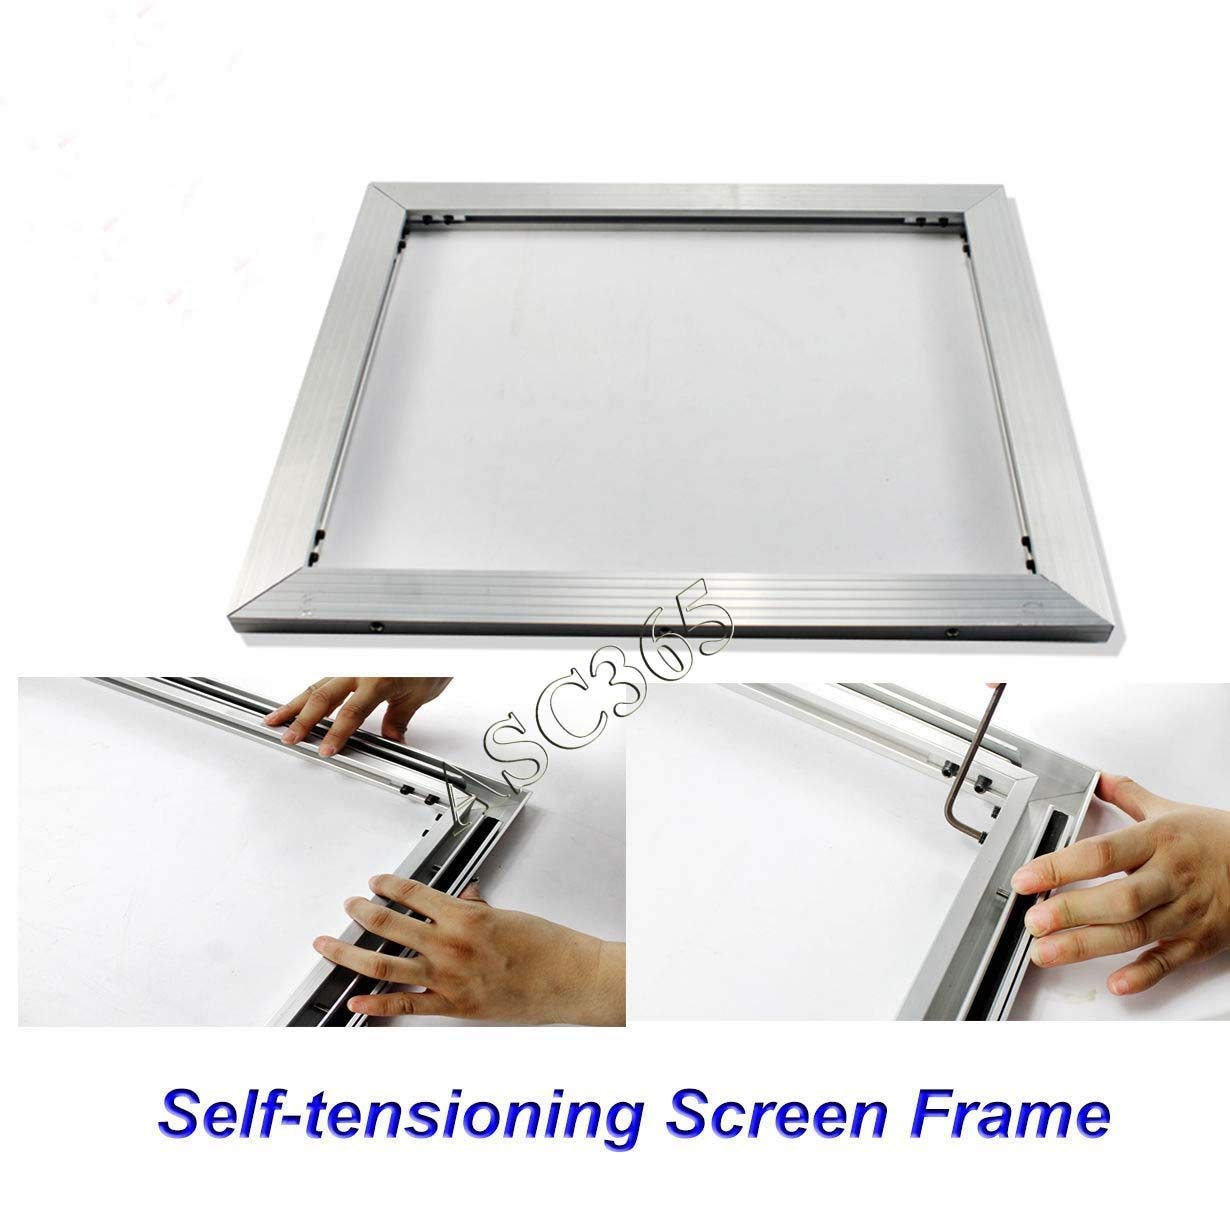 New Self-tensioning Screen Frame Aluminum Material without Glue Stretch ANY Size DIY(Item#219304)